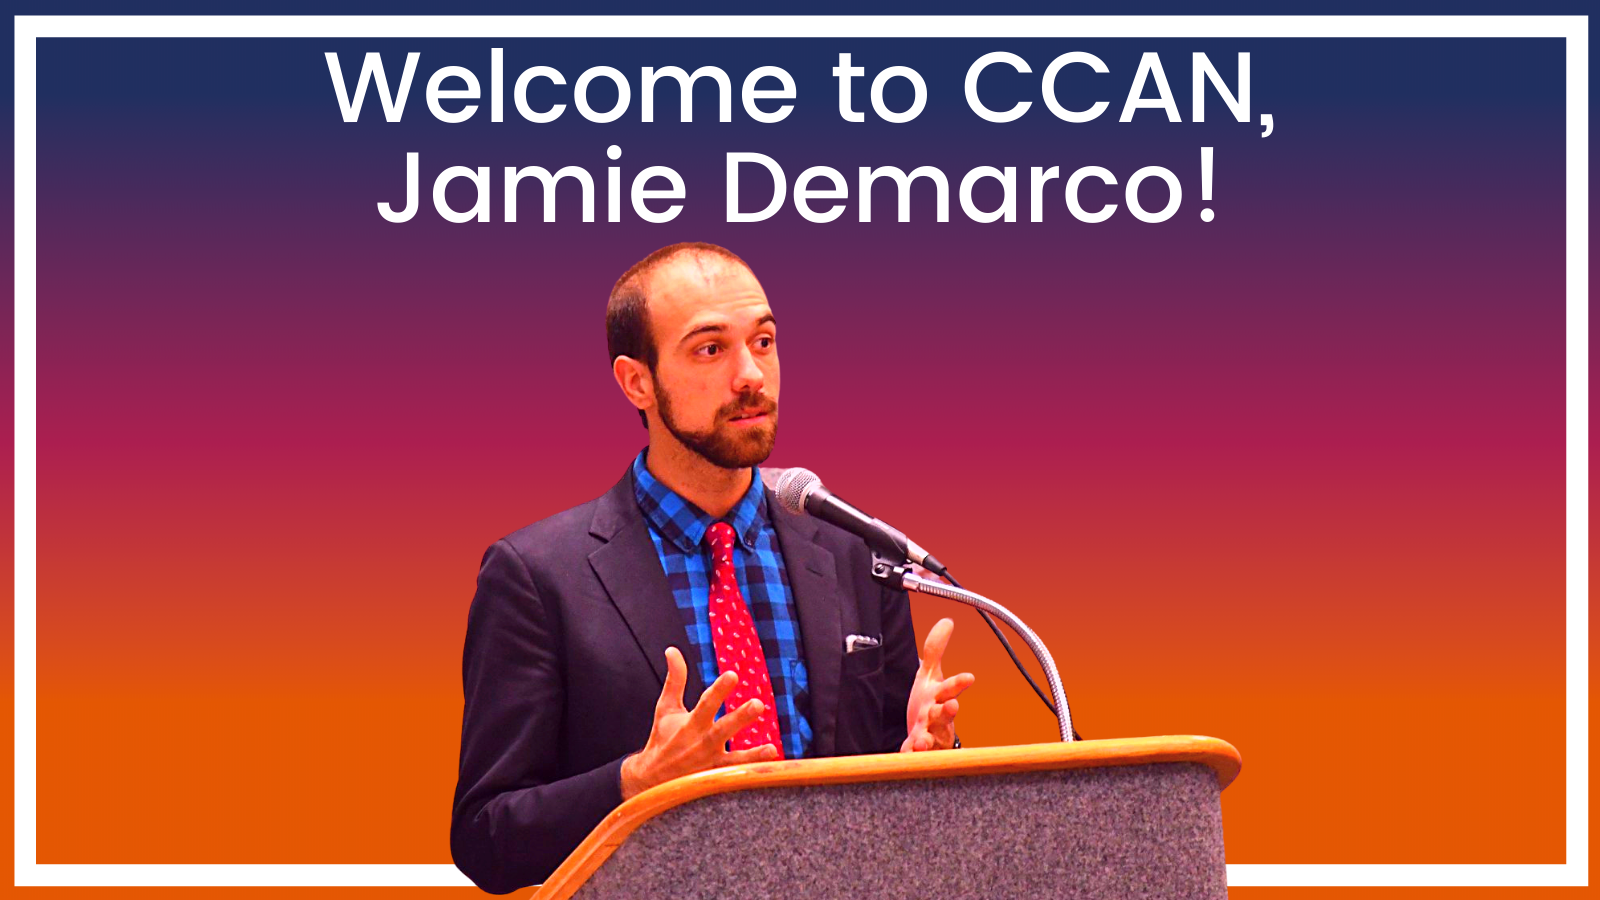 Welcome to CCAN, Jamie DeMarco!